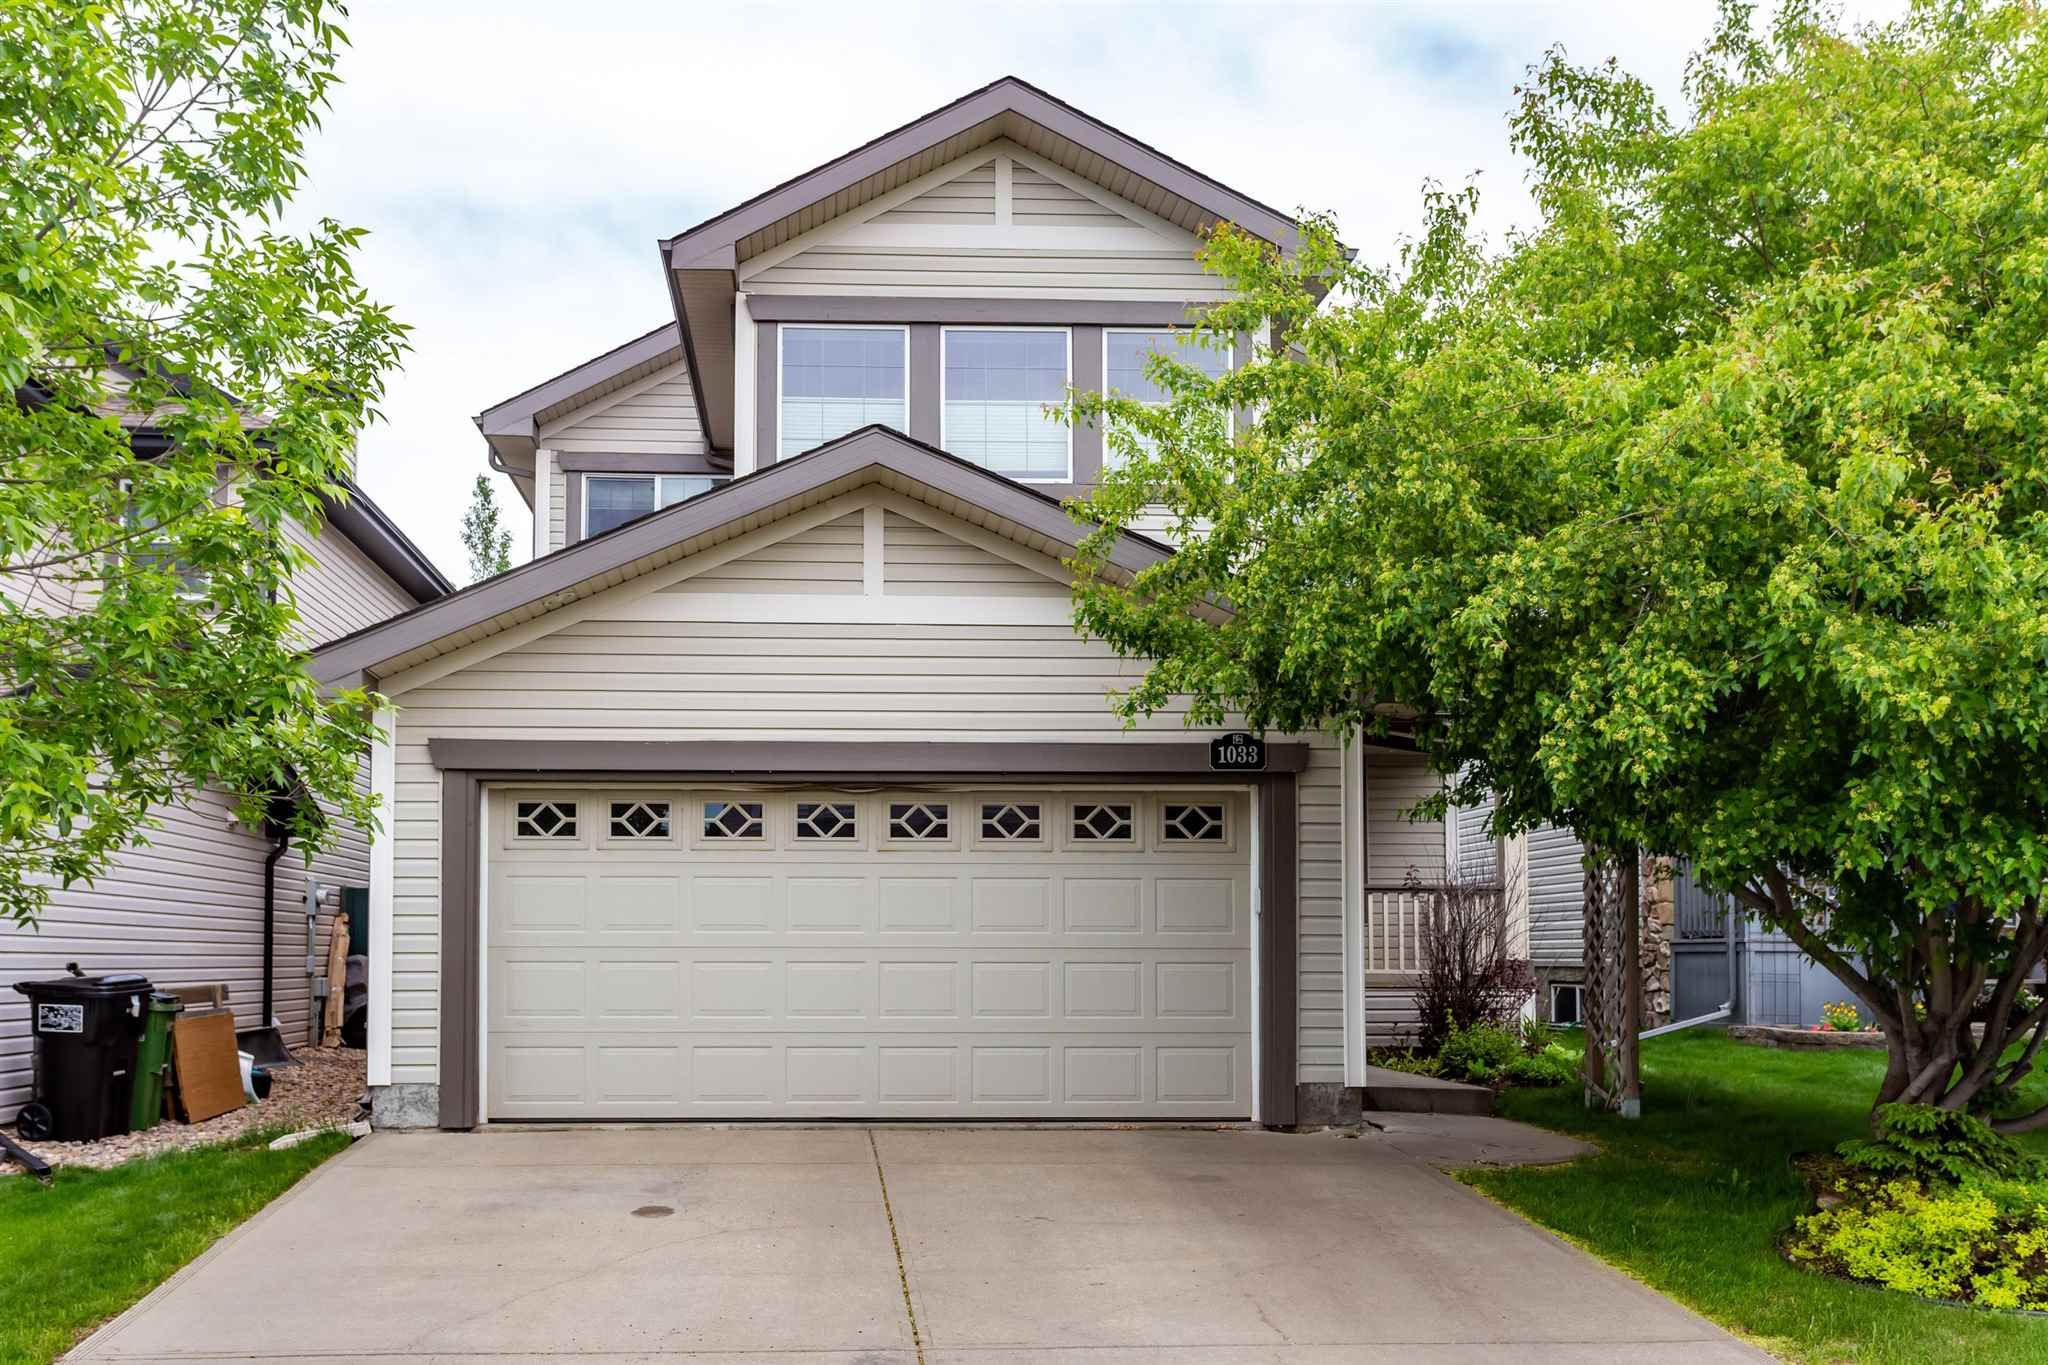 Main Photo: 1033 RUTHERFORD Place in Edmonton: Zone 55 House for sale : MLS®# E4249484